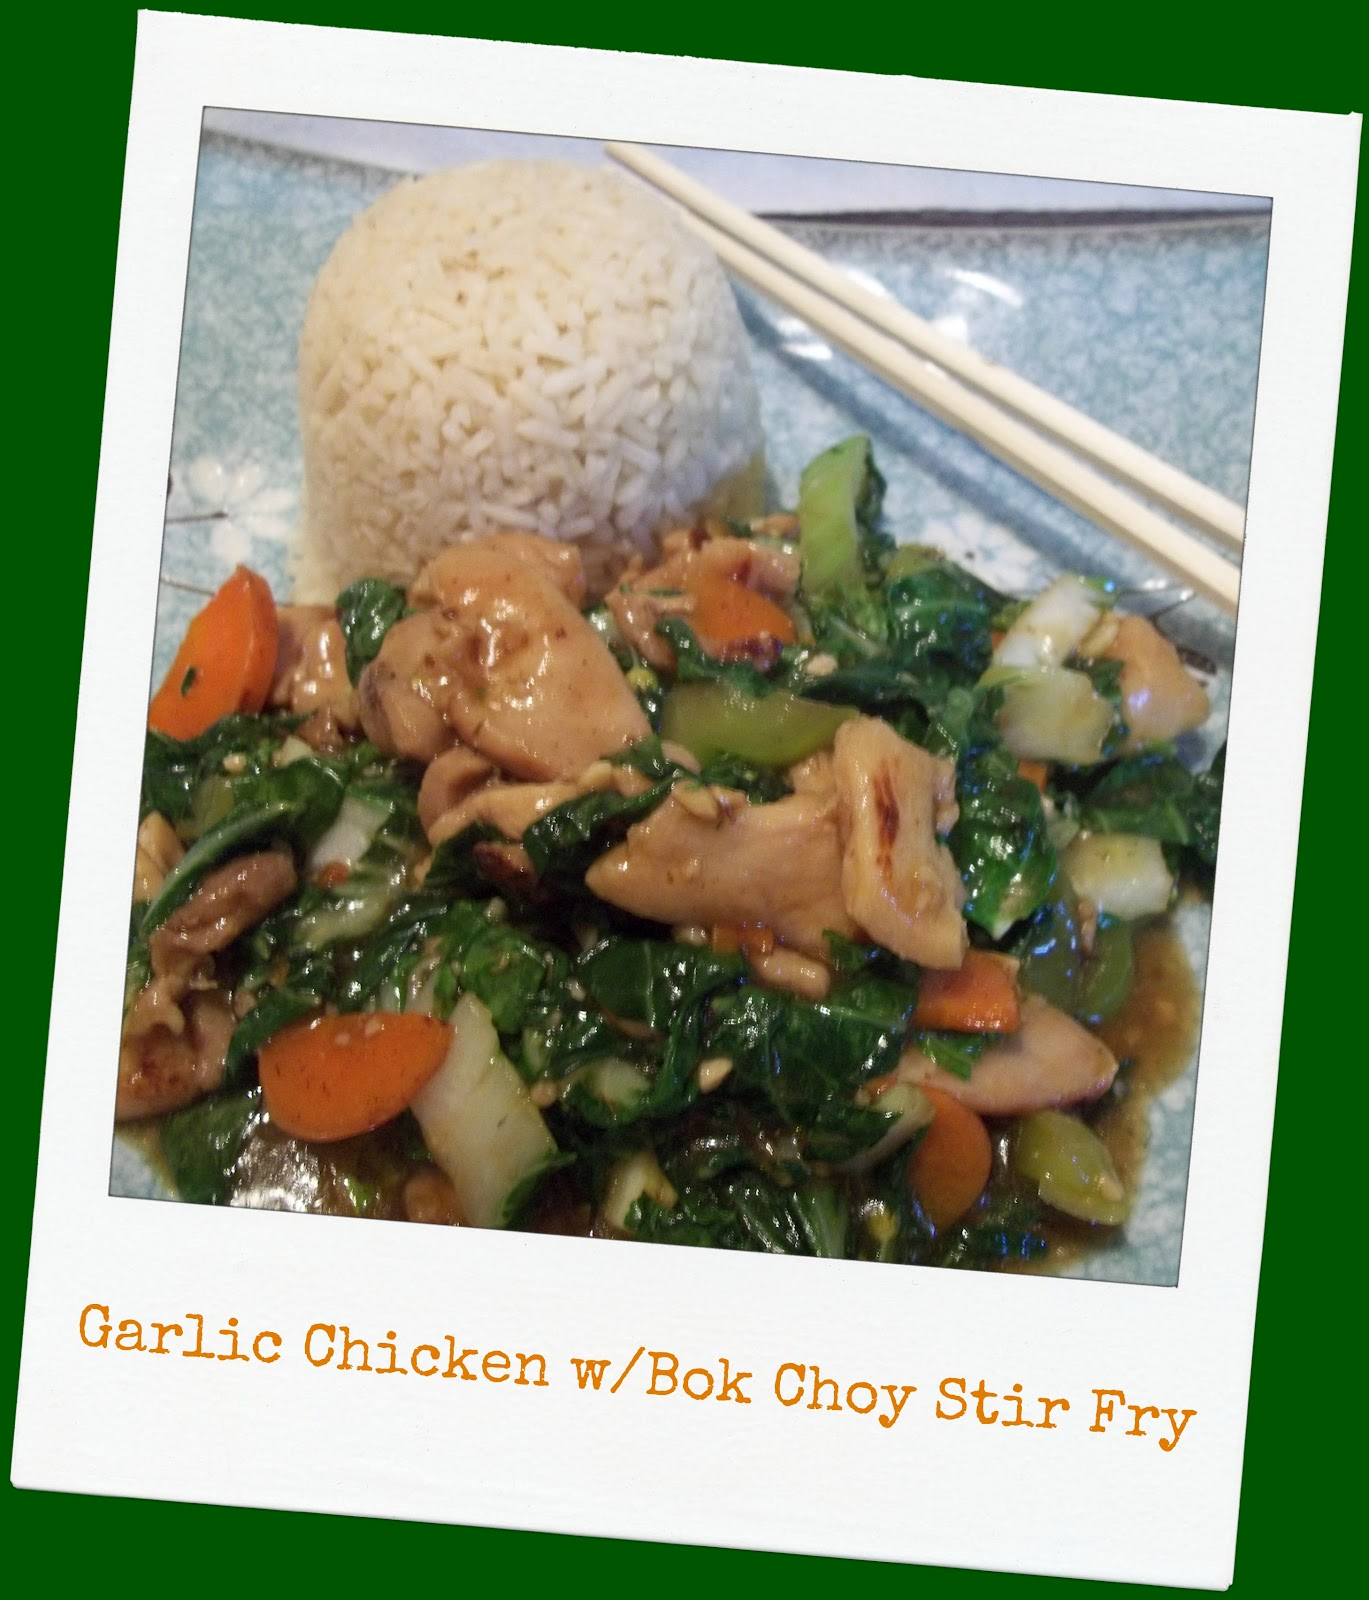 ... : He likes it! He likes it! Garlic Chicken w/Bok Choy Stir Fry